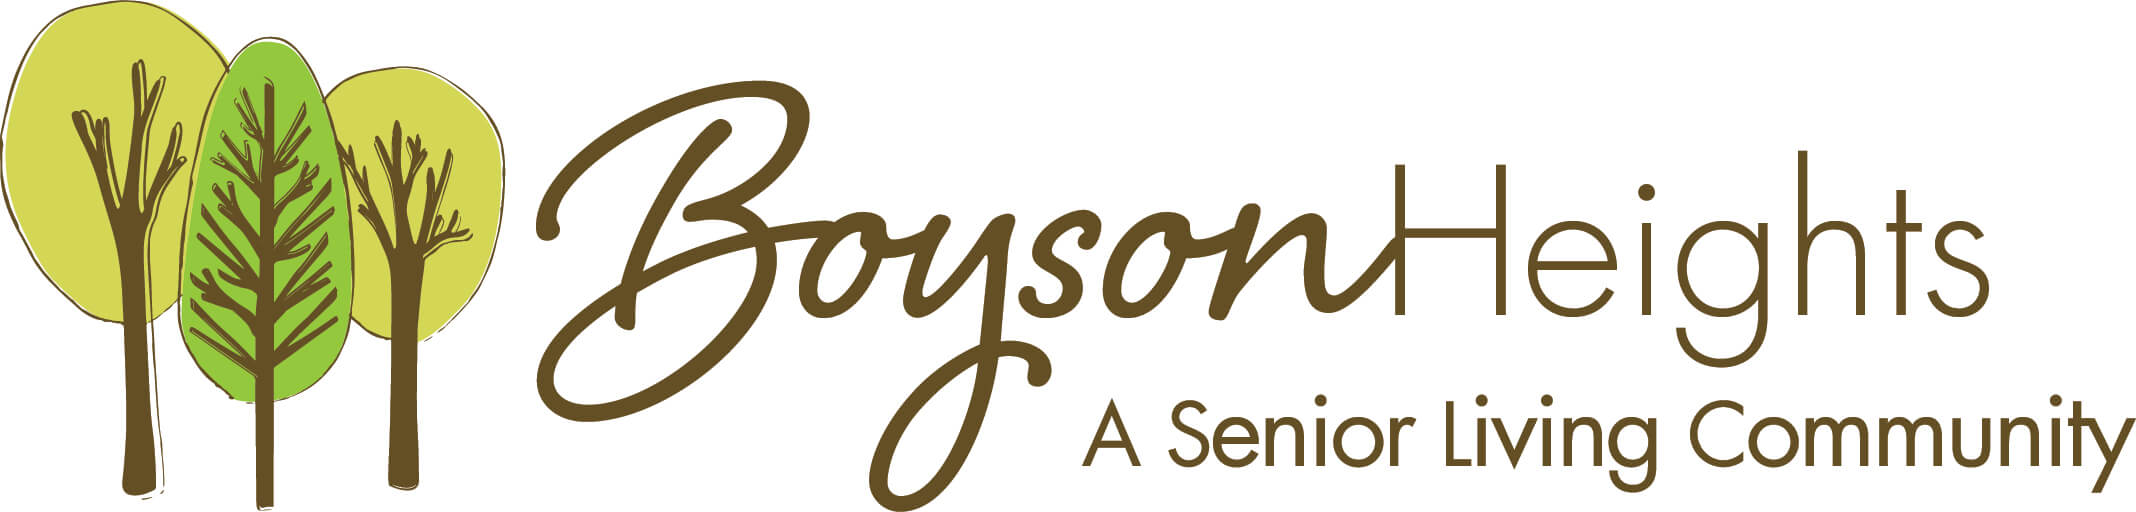 Boyson Heights Senior Living Community